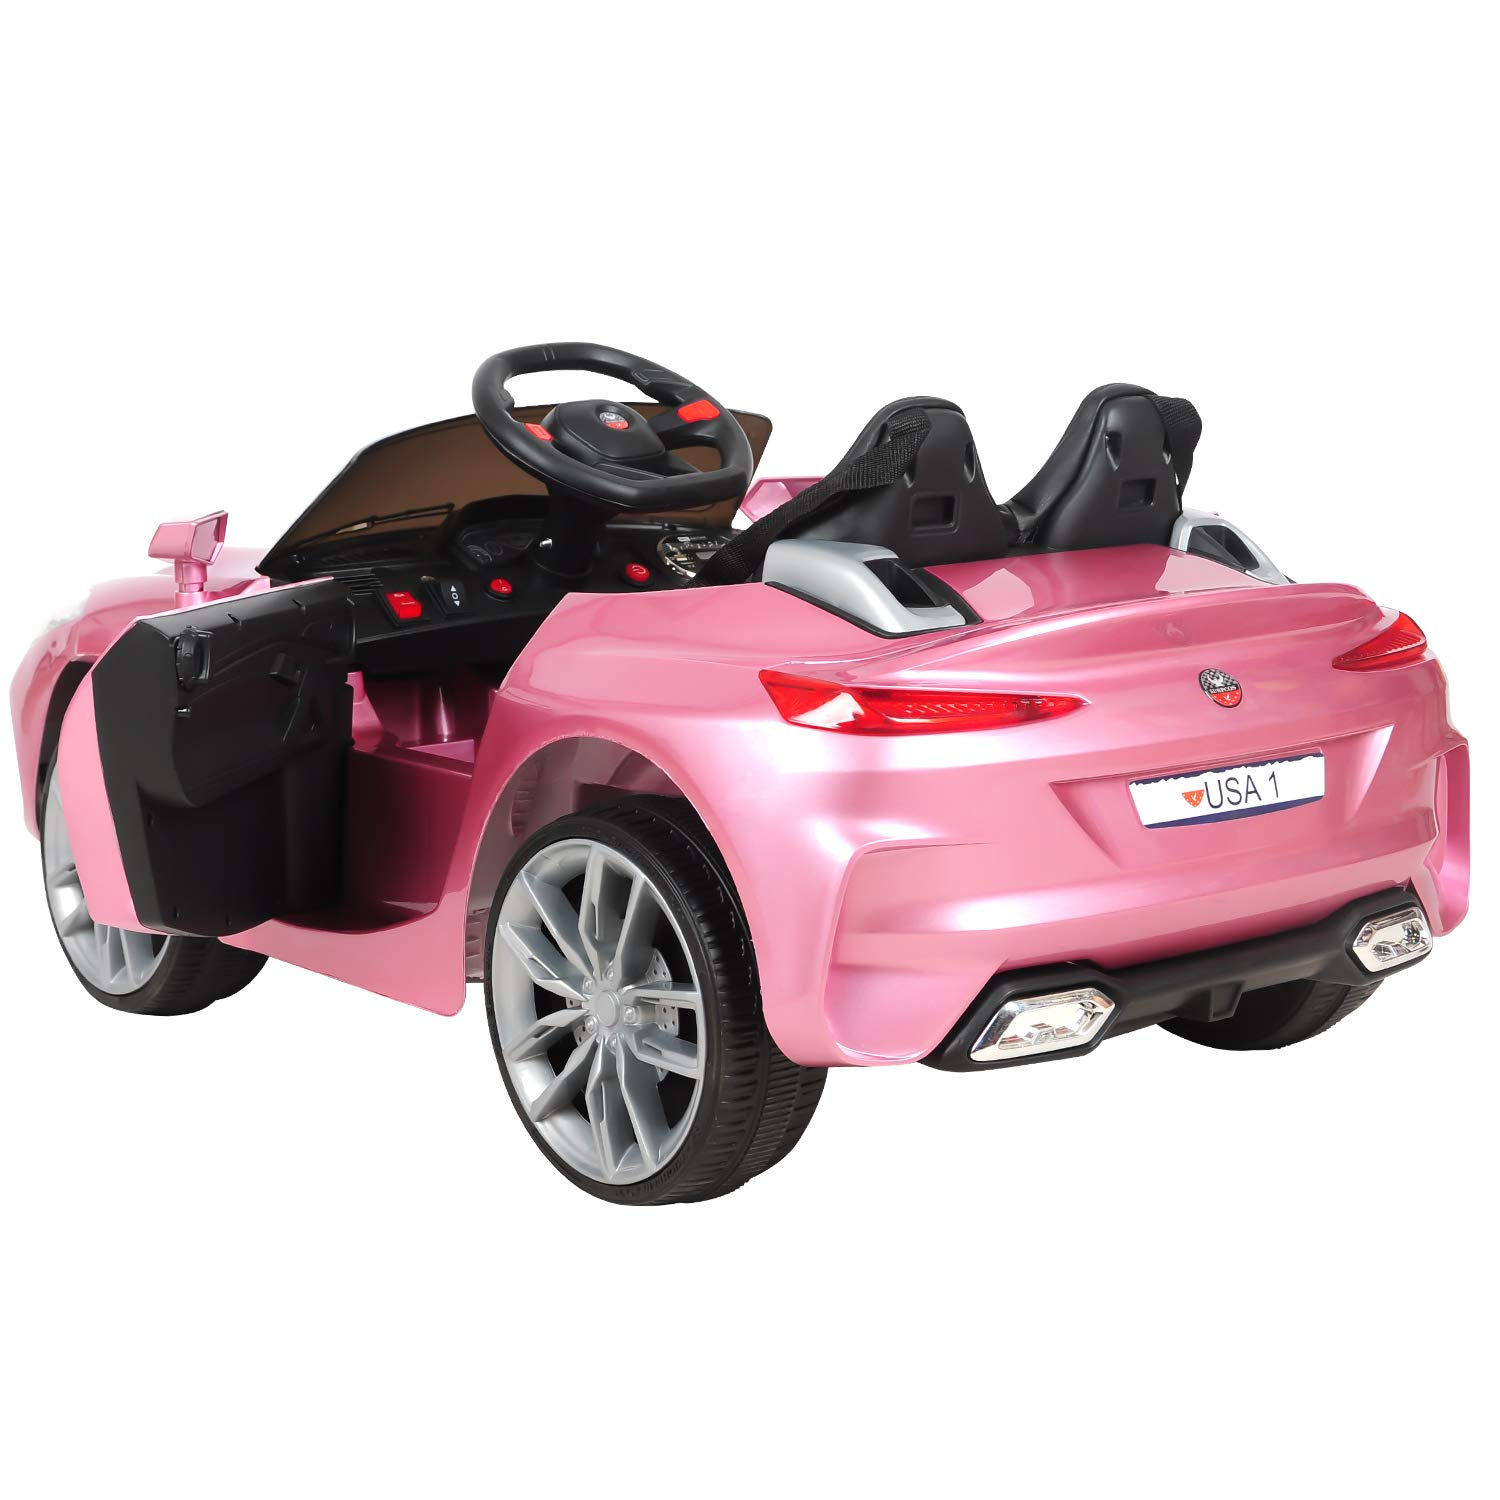 HikeGeek 12V Kids Ride On Car 3 Speeds AUX Electric RC Ride On ...